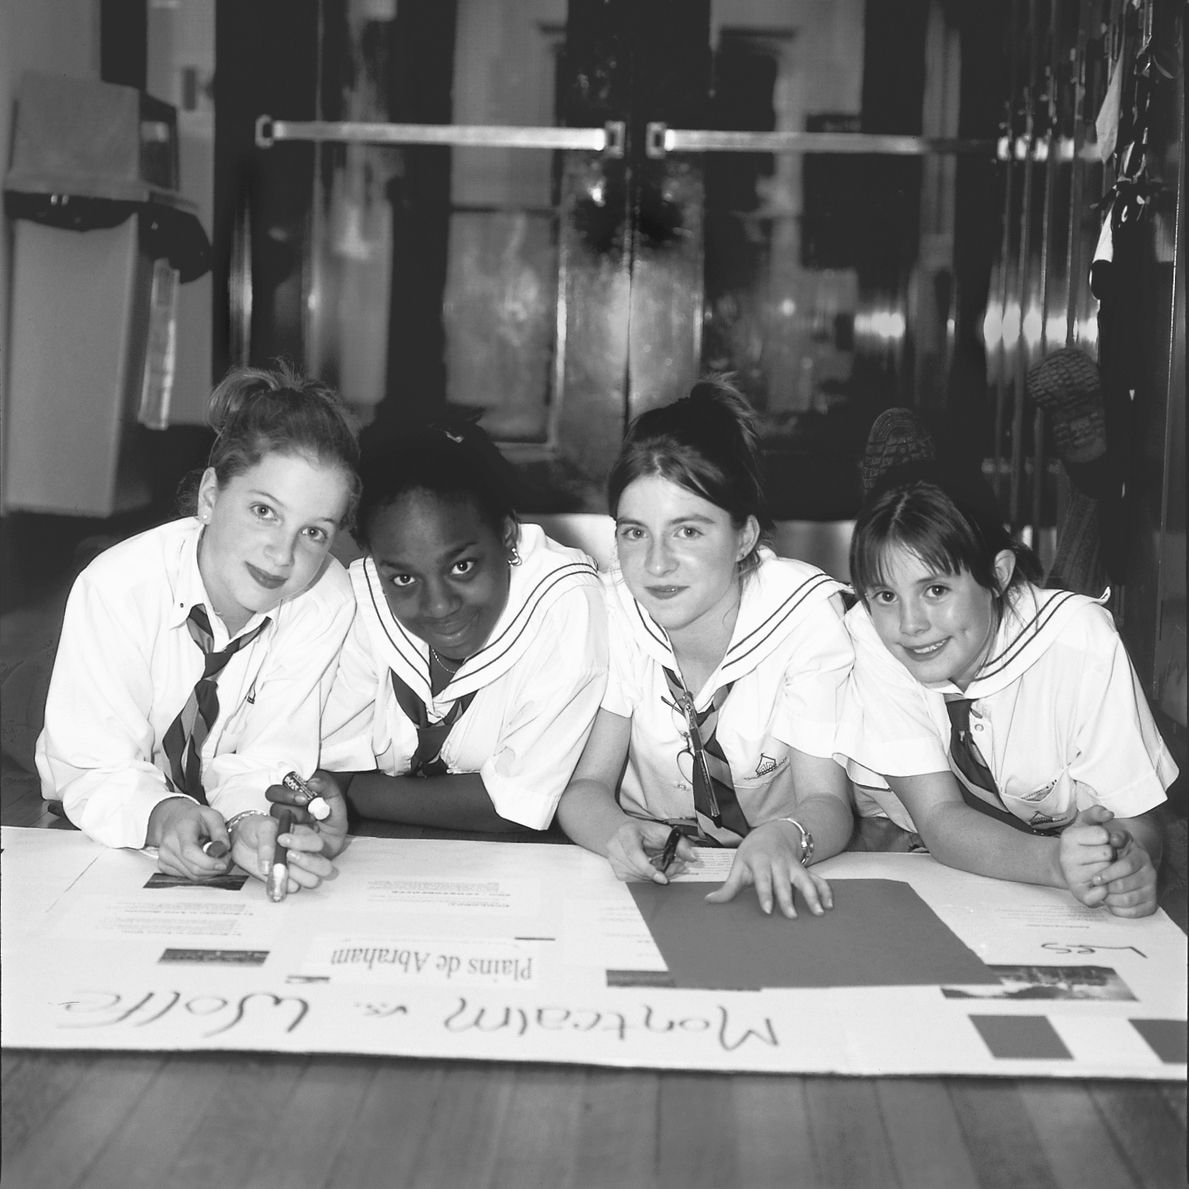 A black and white photo of a diverse group of students working on a poster together